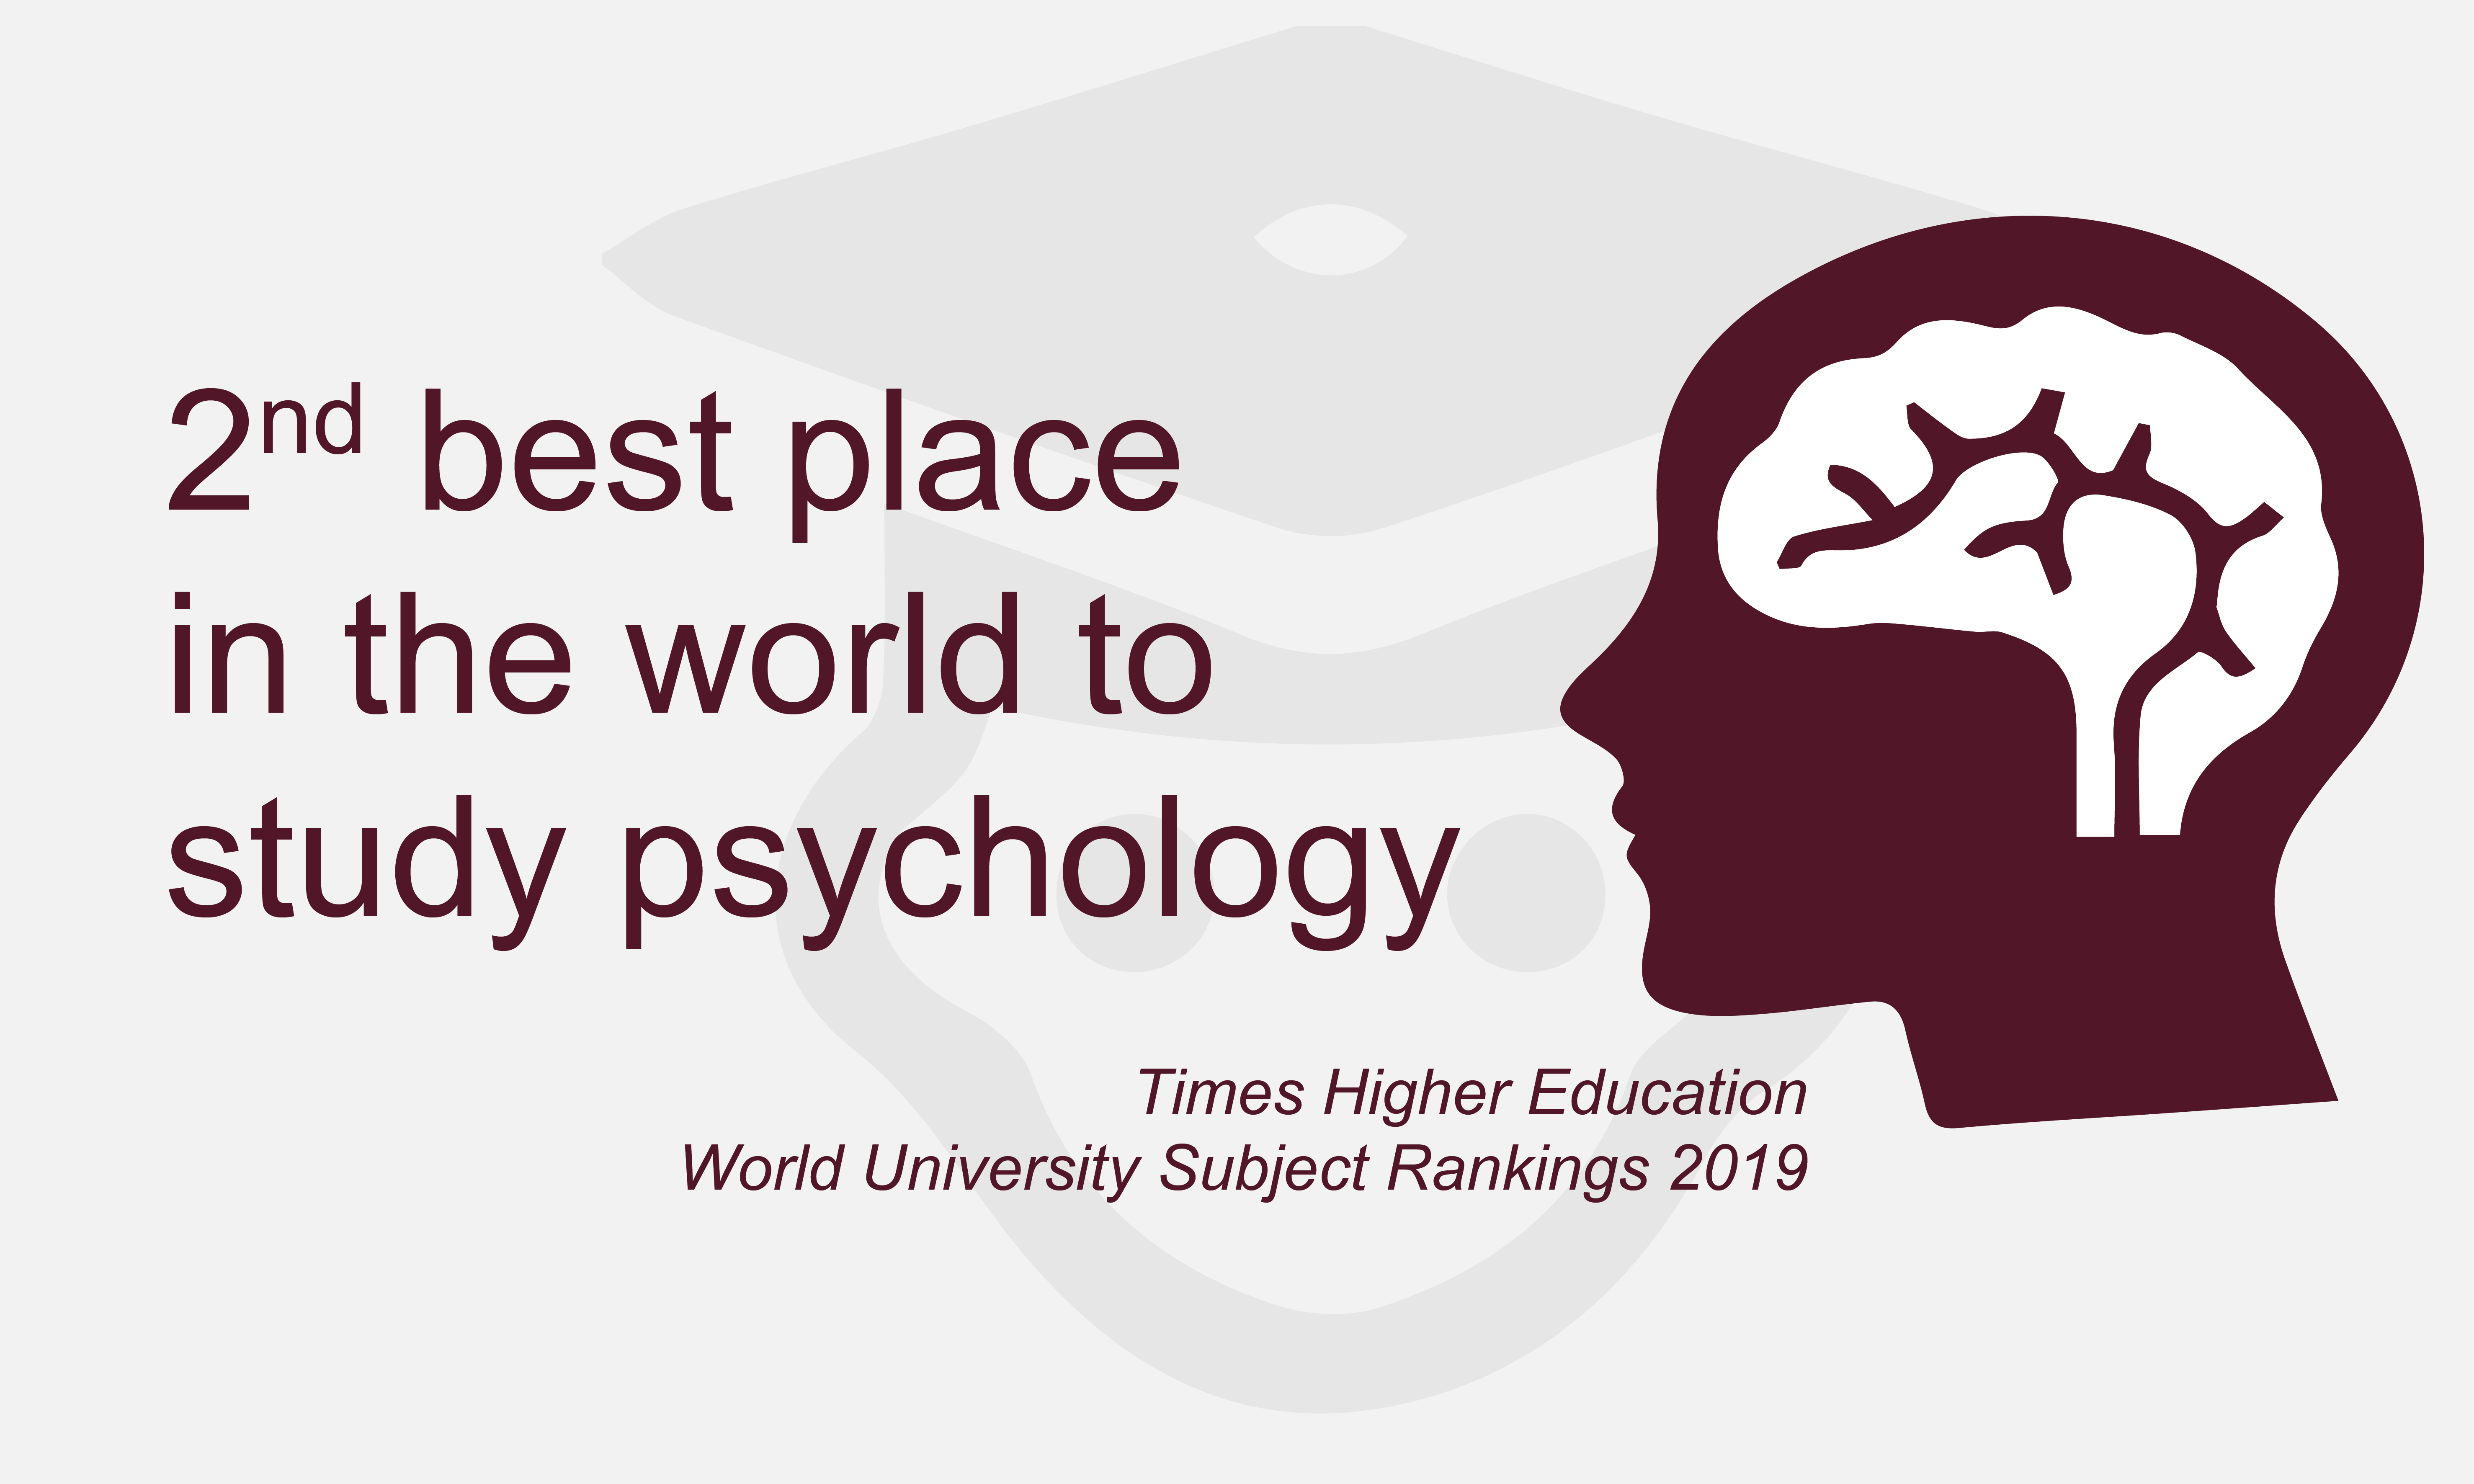 UCL is the 2nd best place in the world to study psychology